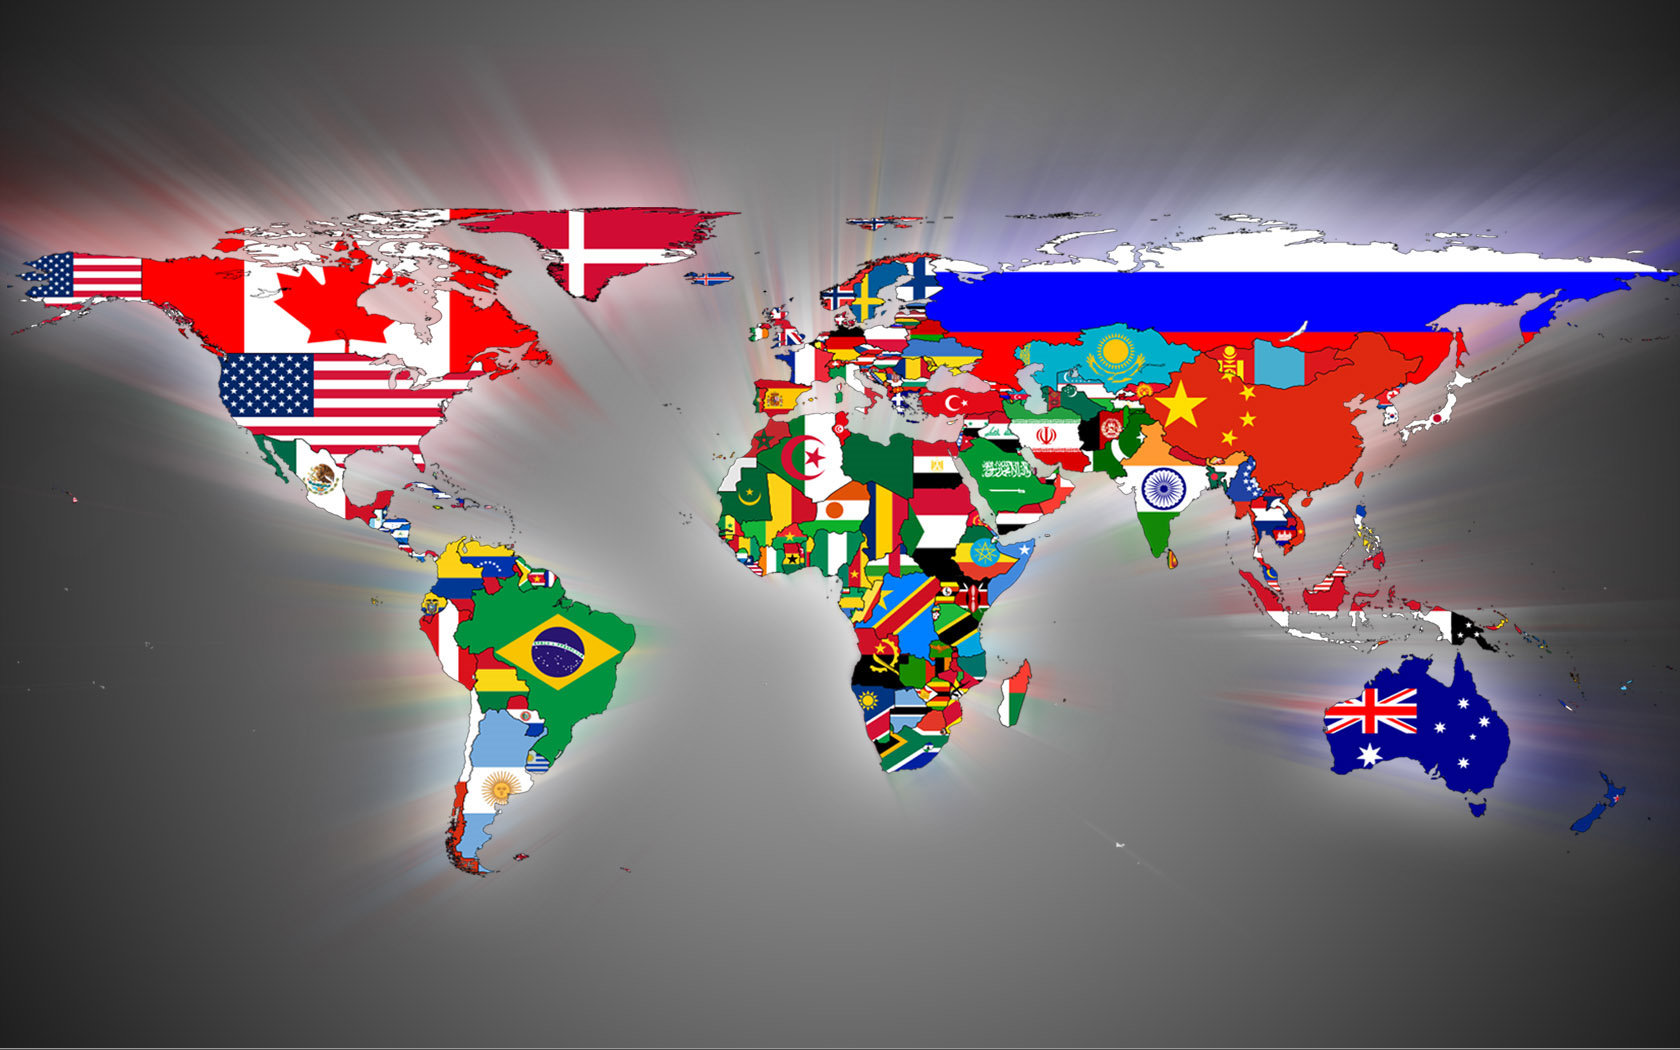 world map wallpaper uk - wallpapersafari